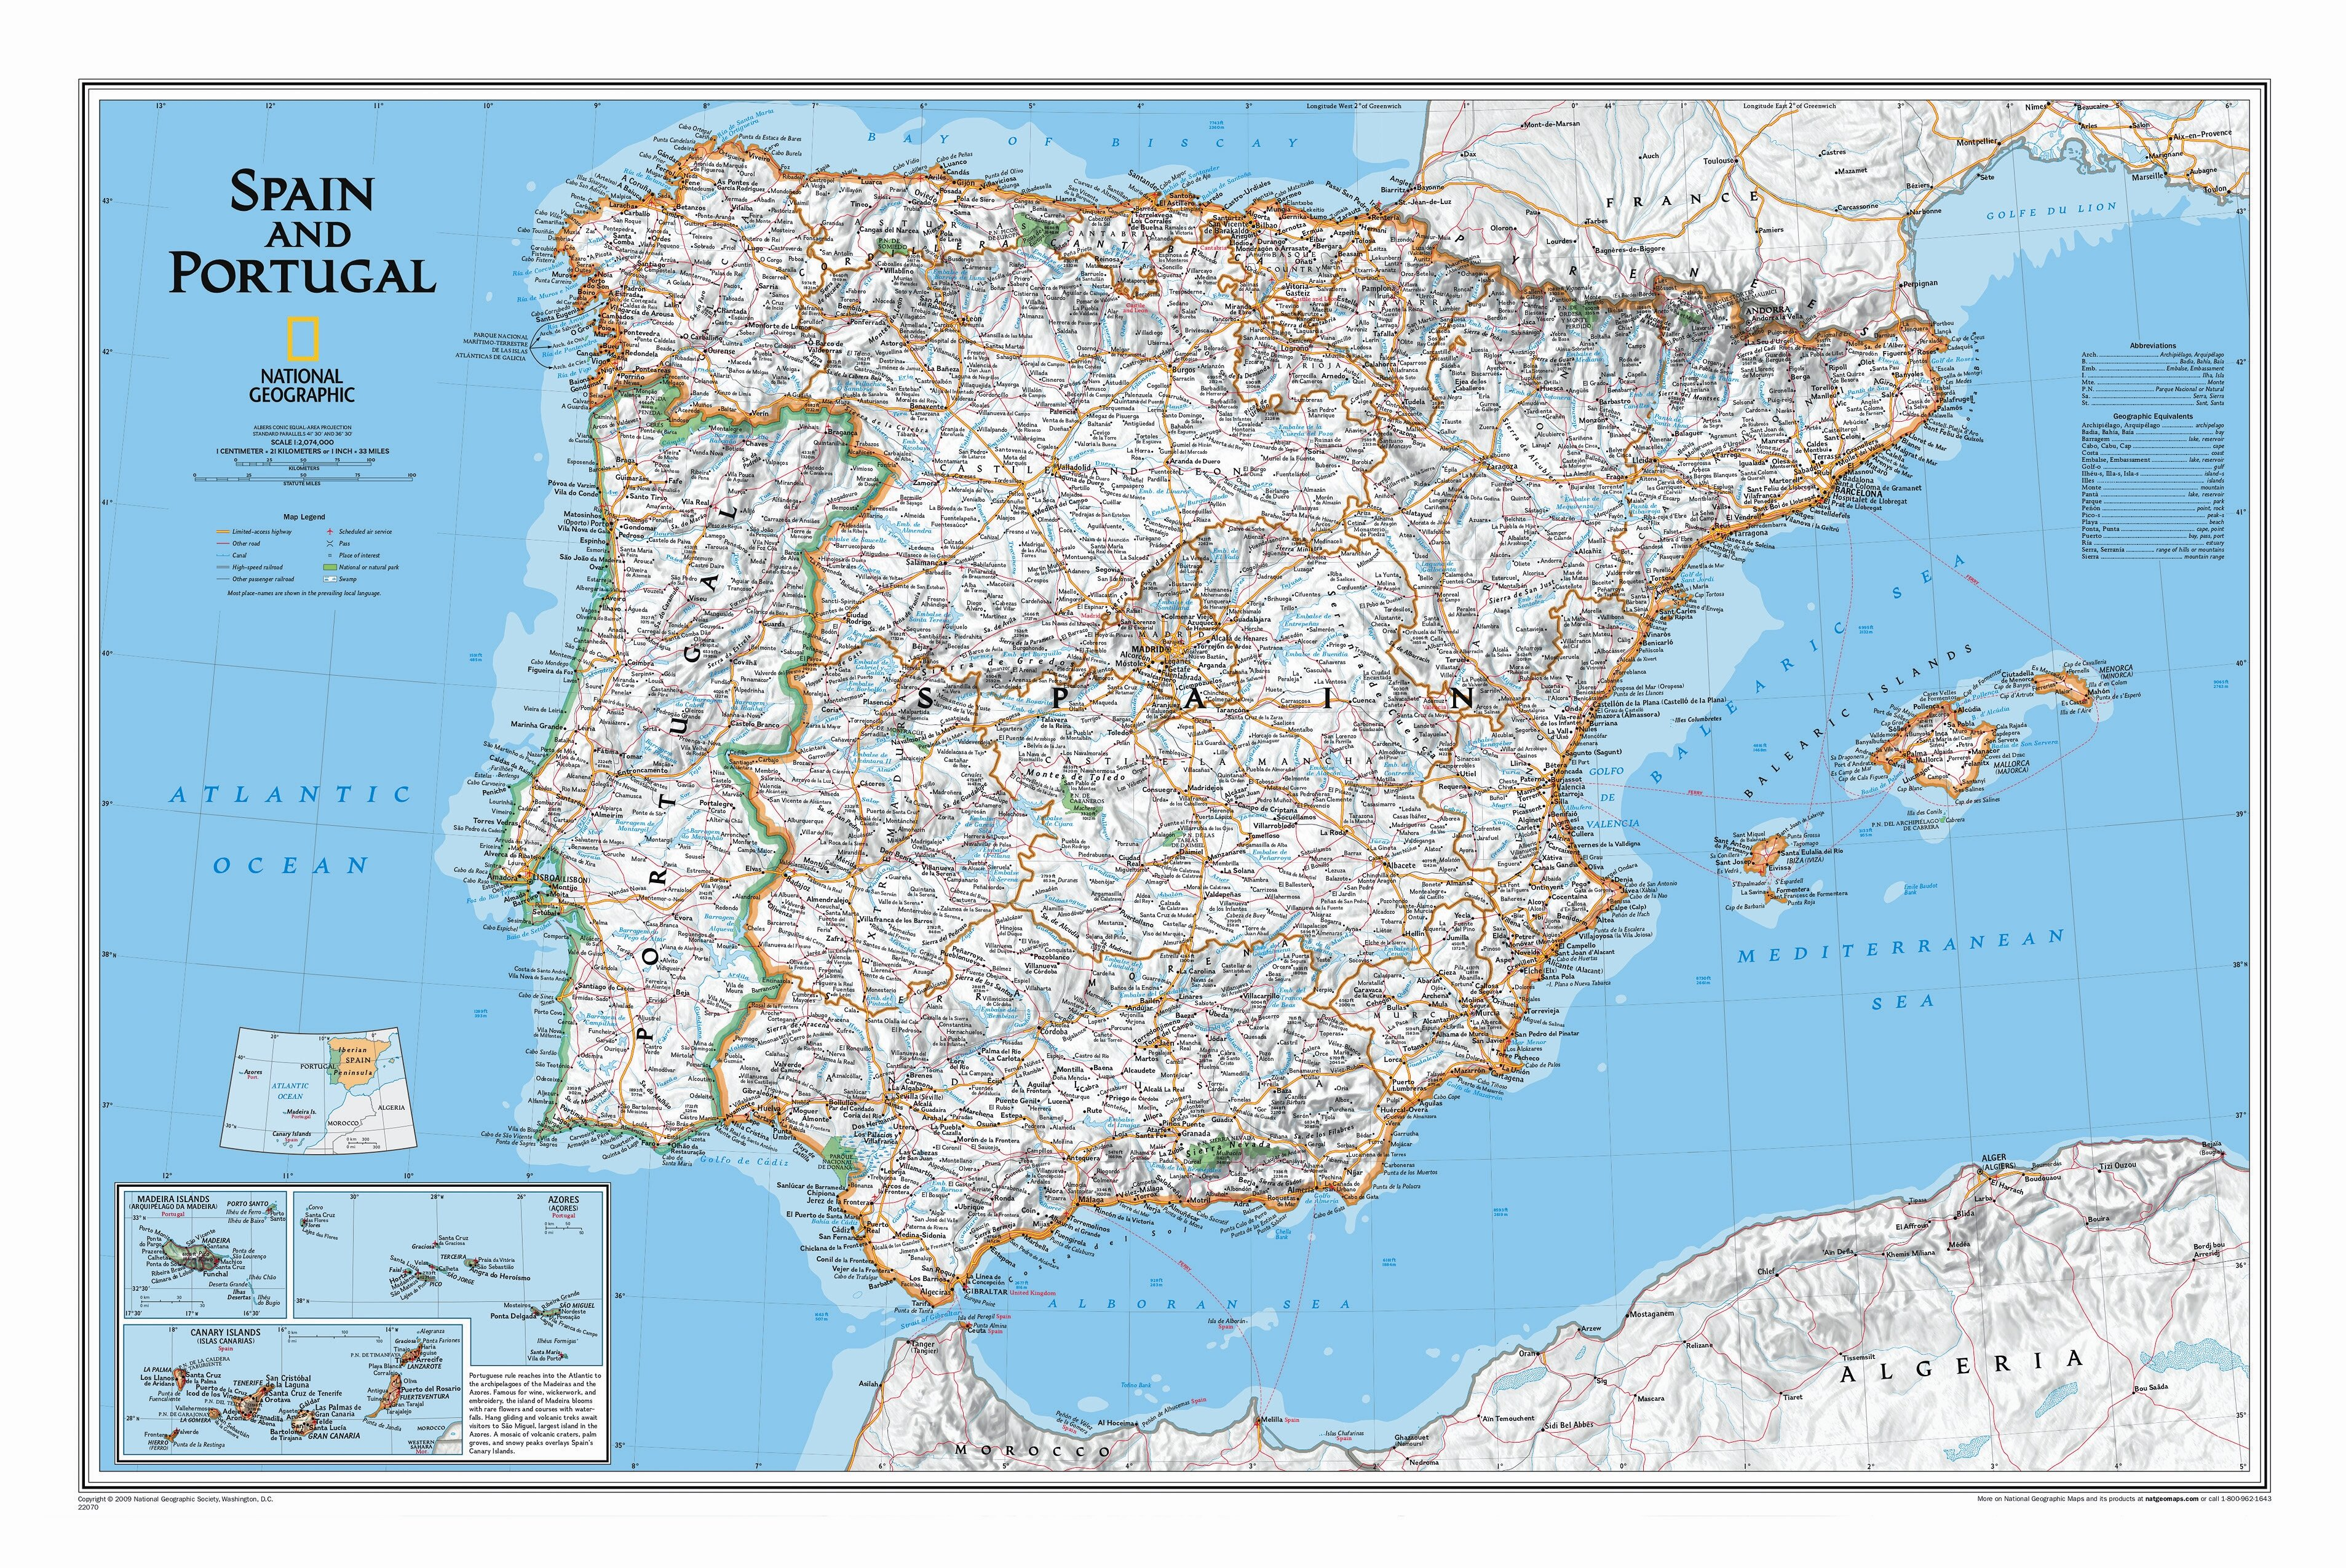 Detailed Map Of Spain.Spain Portugal Classic Wall Map